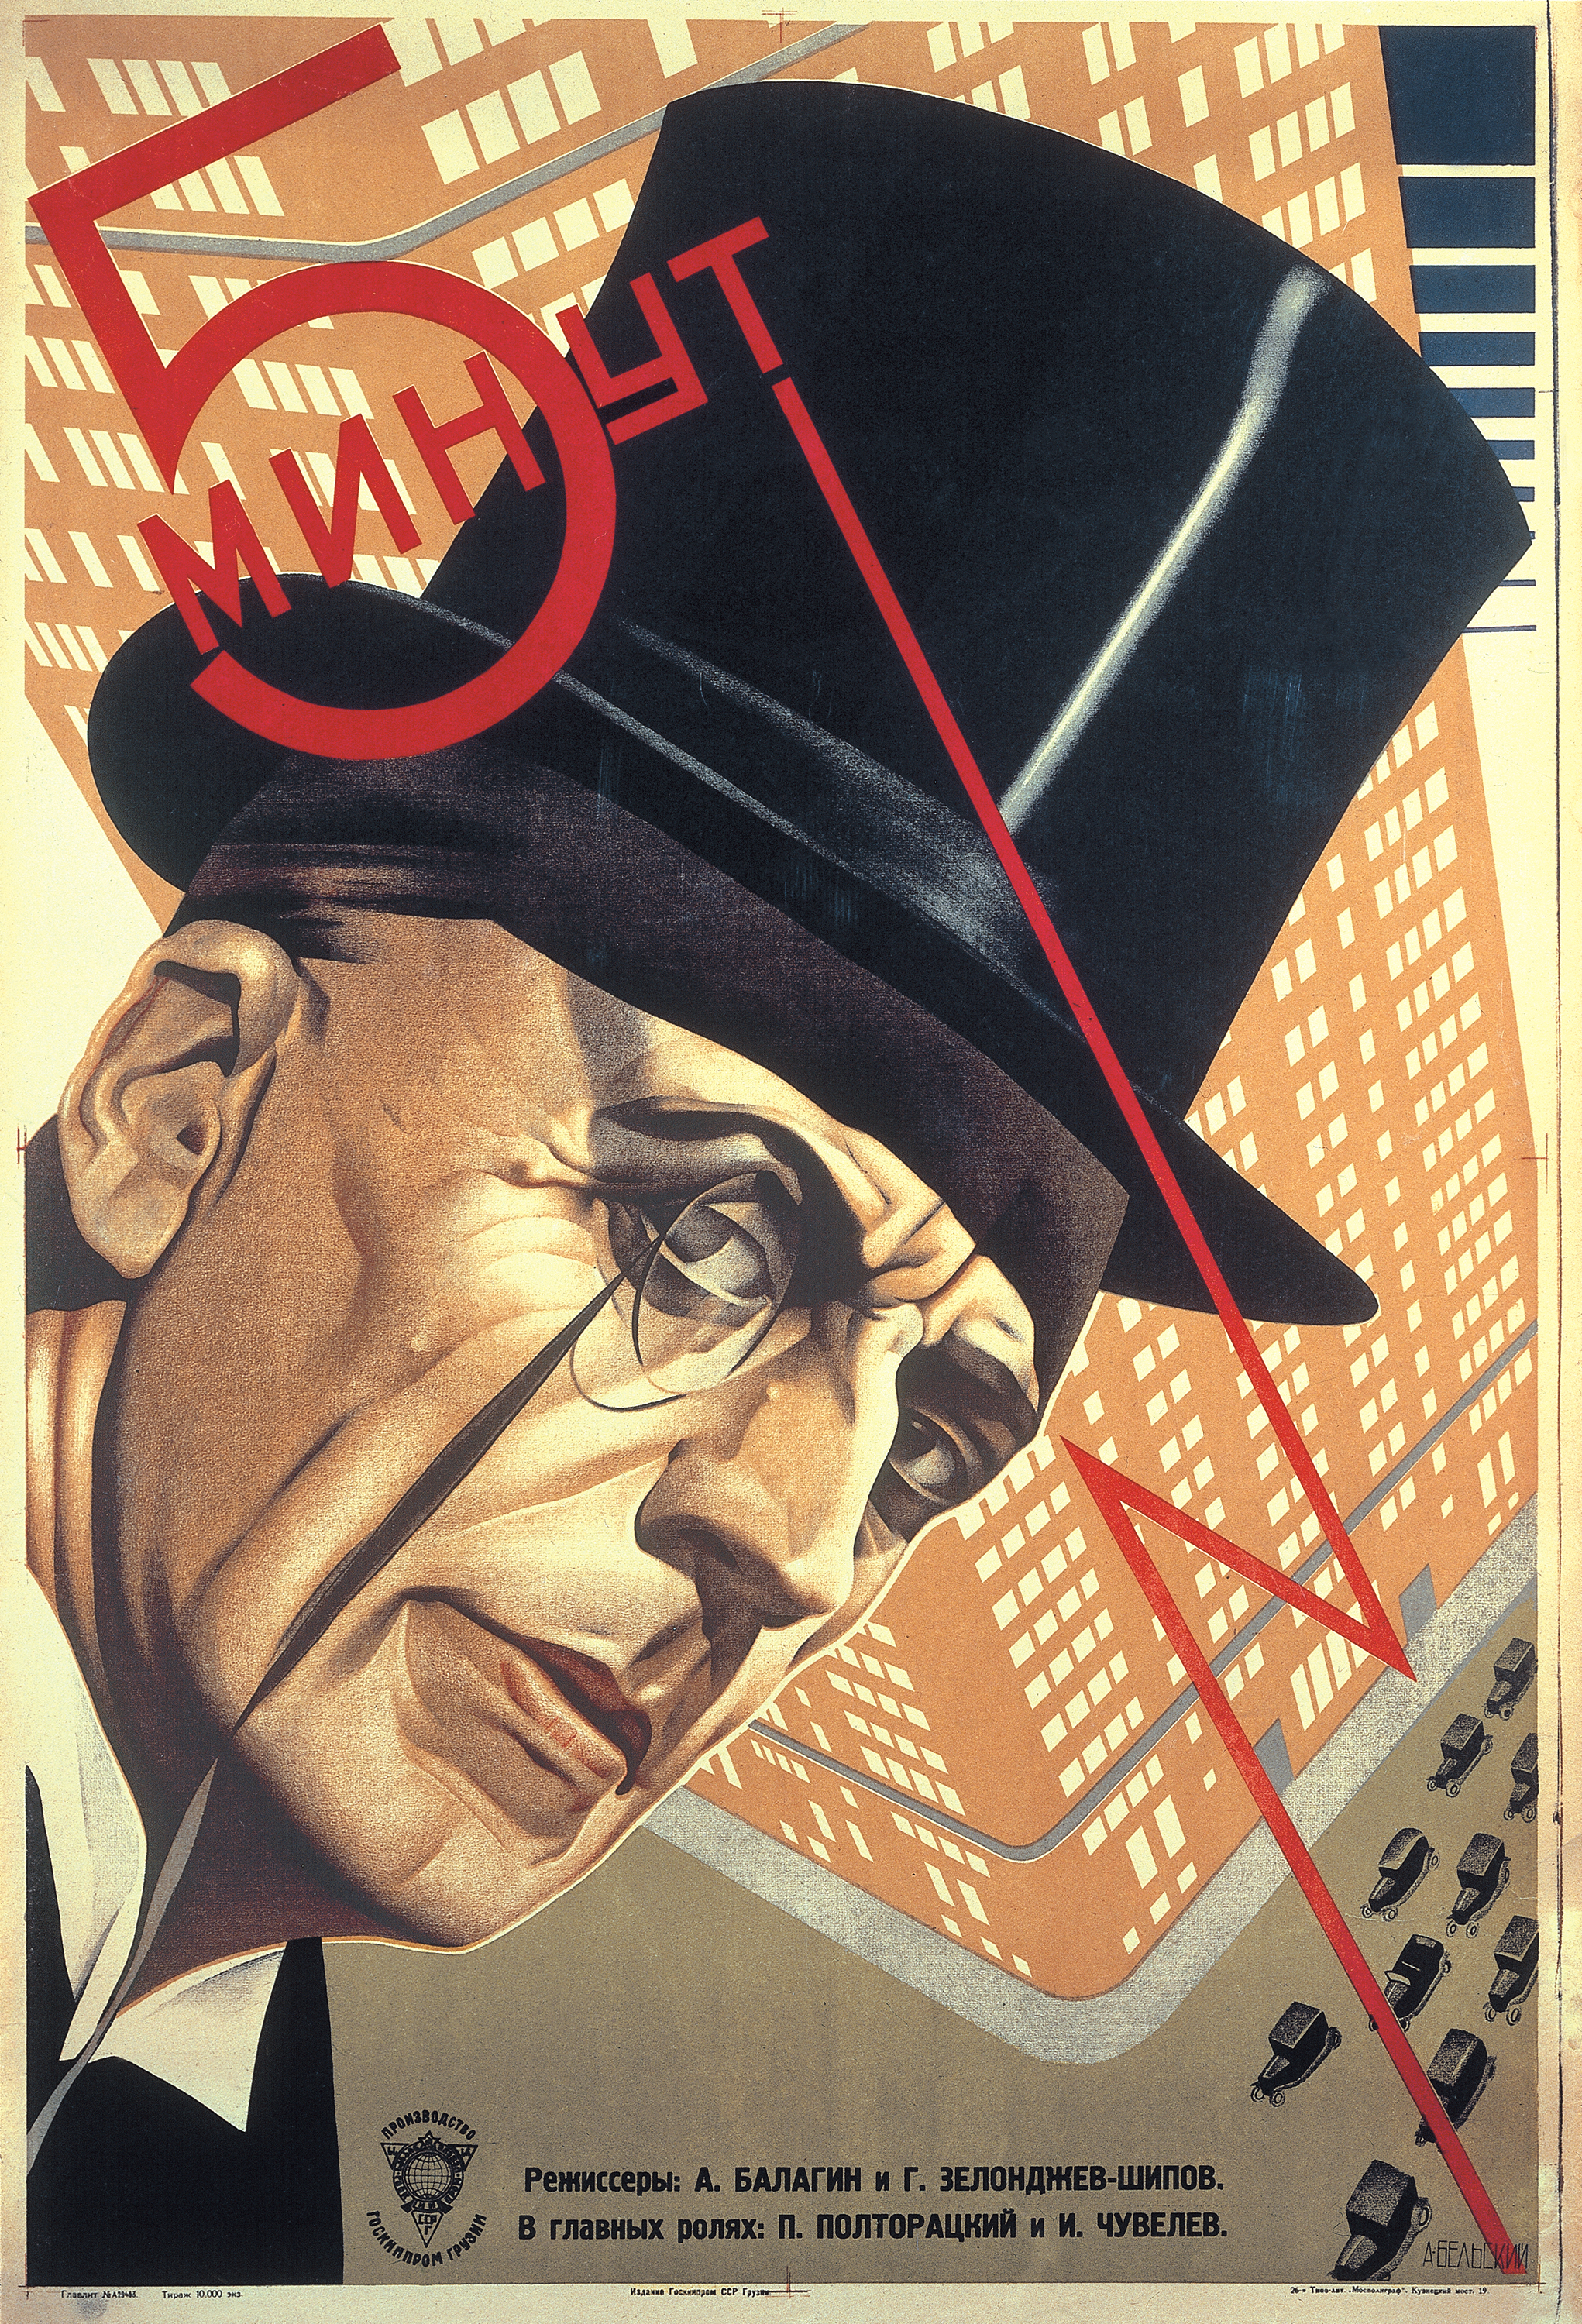 Anatoly Belsky. Poster for 'Five Minutes,' directed by Alexander Balagin and Georgy Zelondzhev-Shipov, 1929